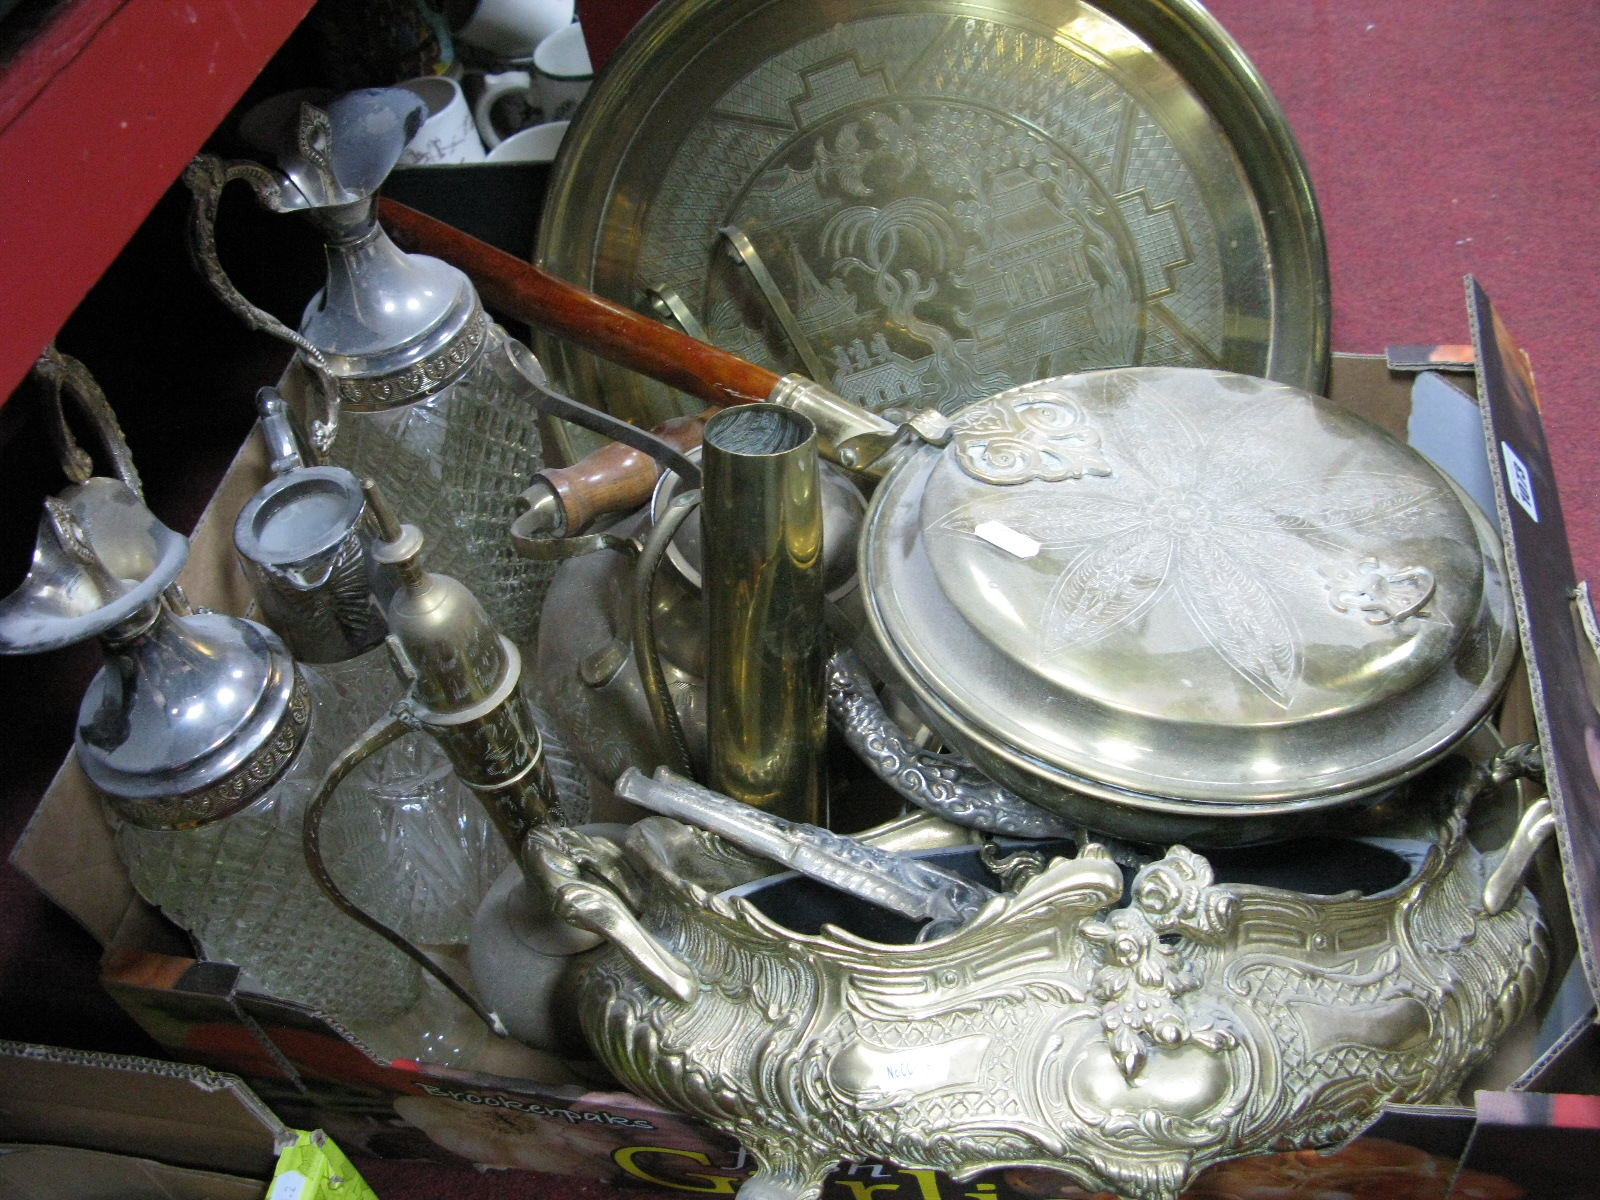 Lot 1073 - Brassware - warming pan, horse brasses, shell case, chargers, rococo scrolled planter, etc; ewers,